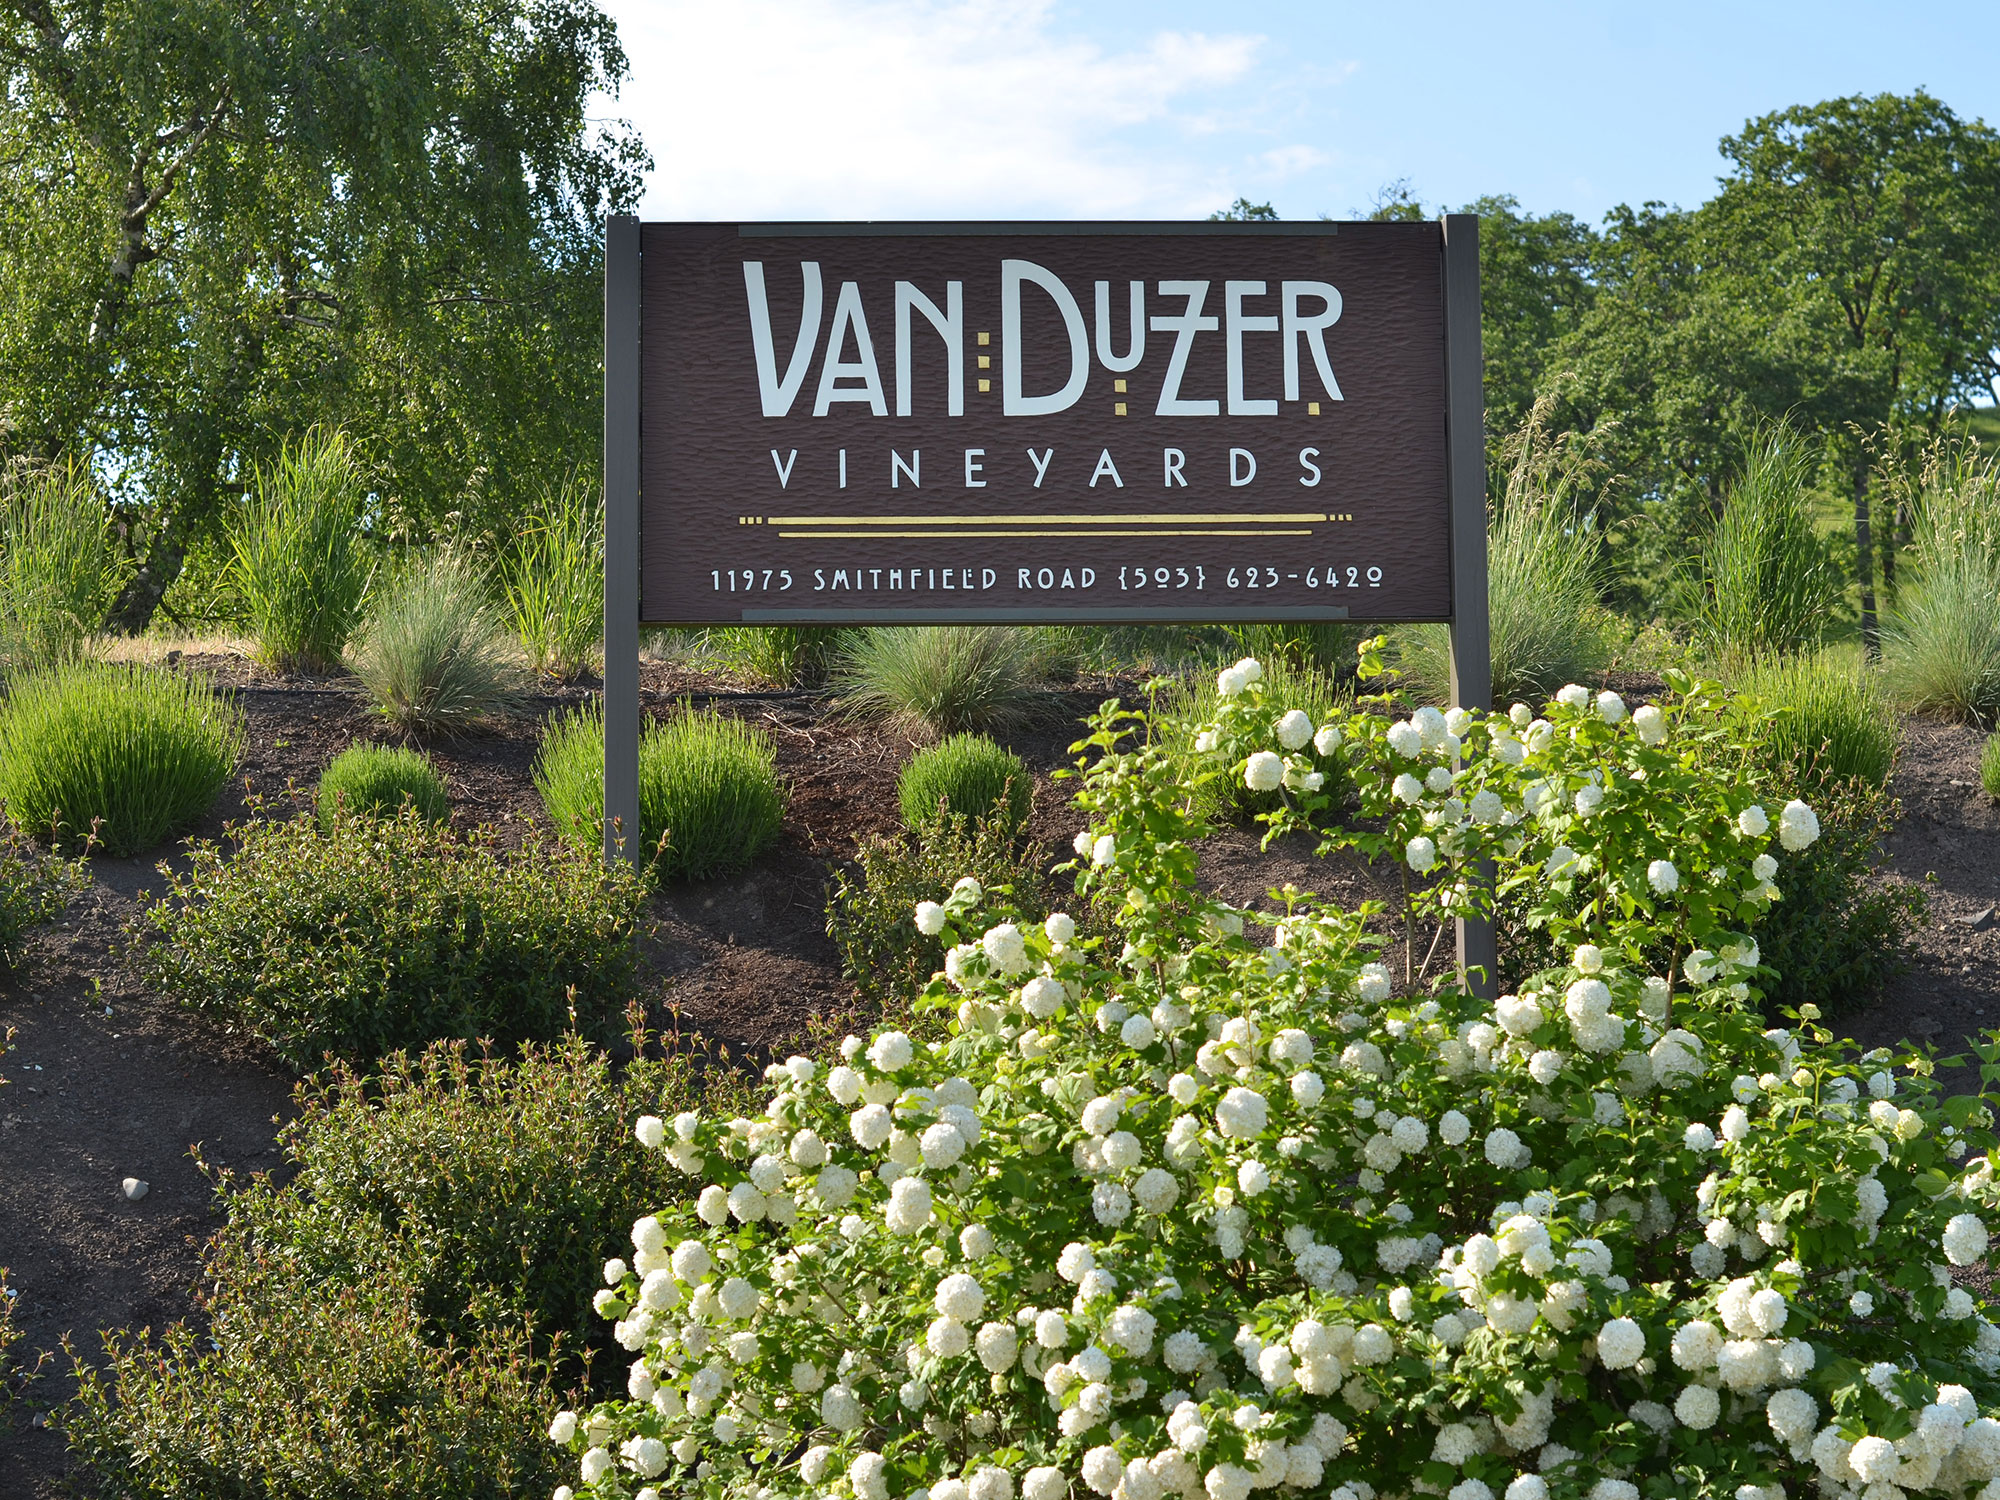 Van Duzer Vineyards & Winery